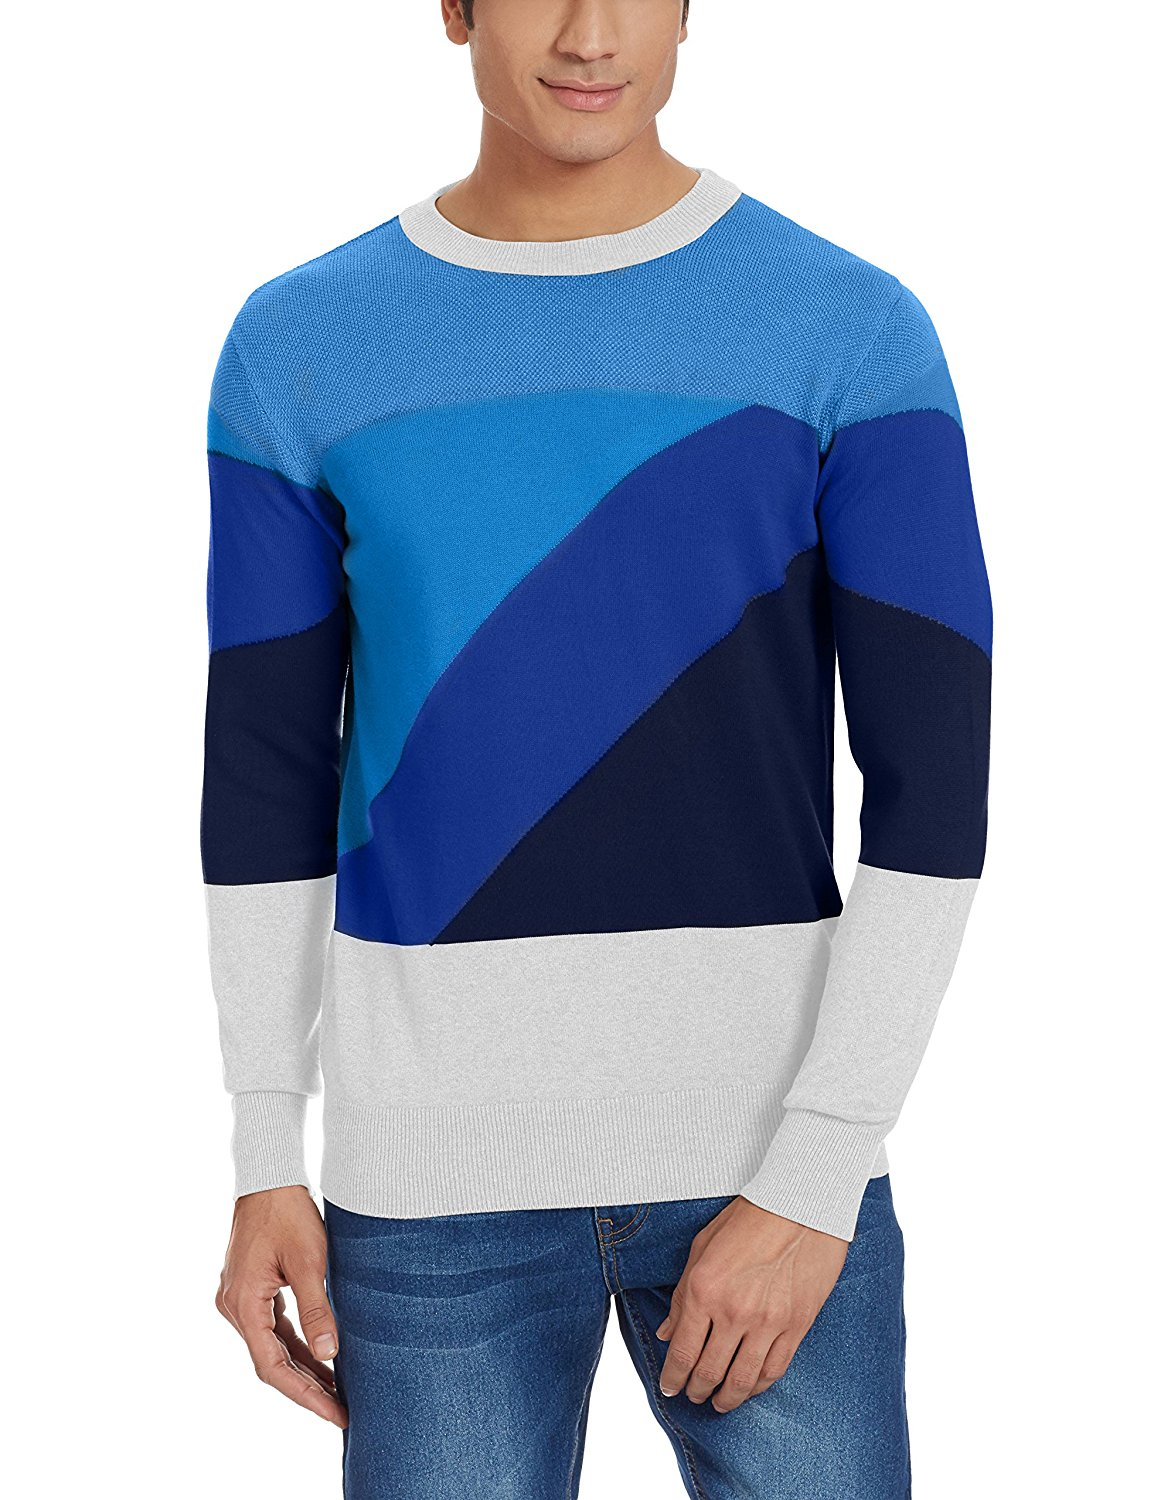 Amazon -Buy-United-Colors-of-Benetton-Mens-Cotton-Sweater-for-Rs.929-70-off.jpg